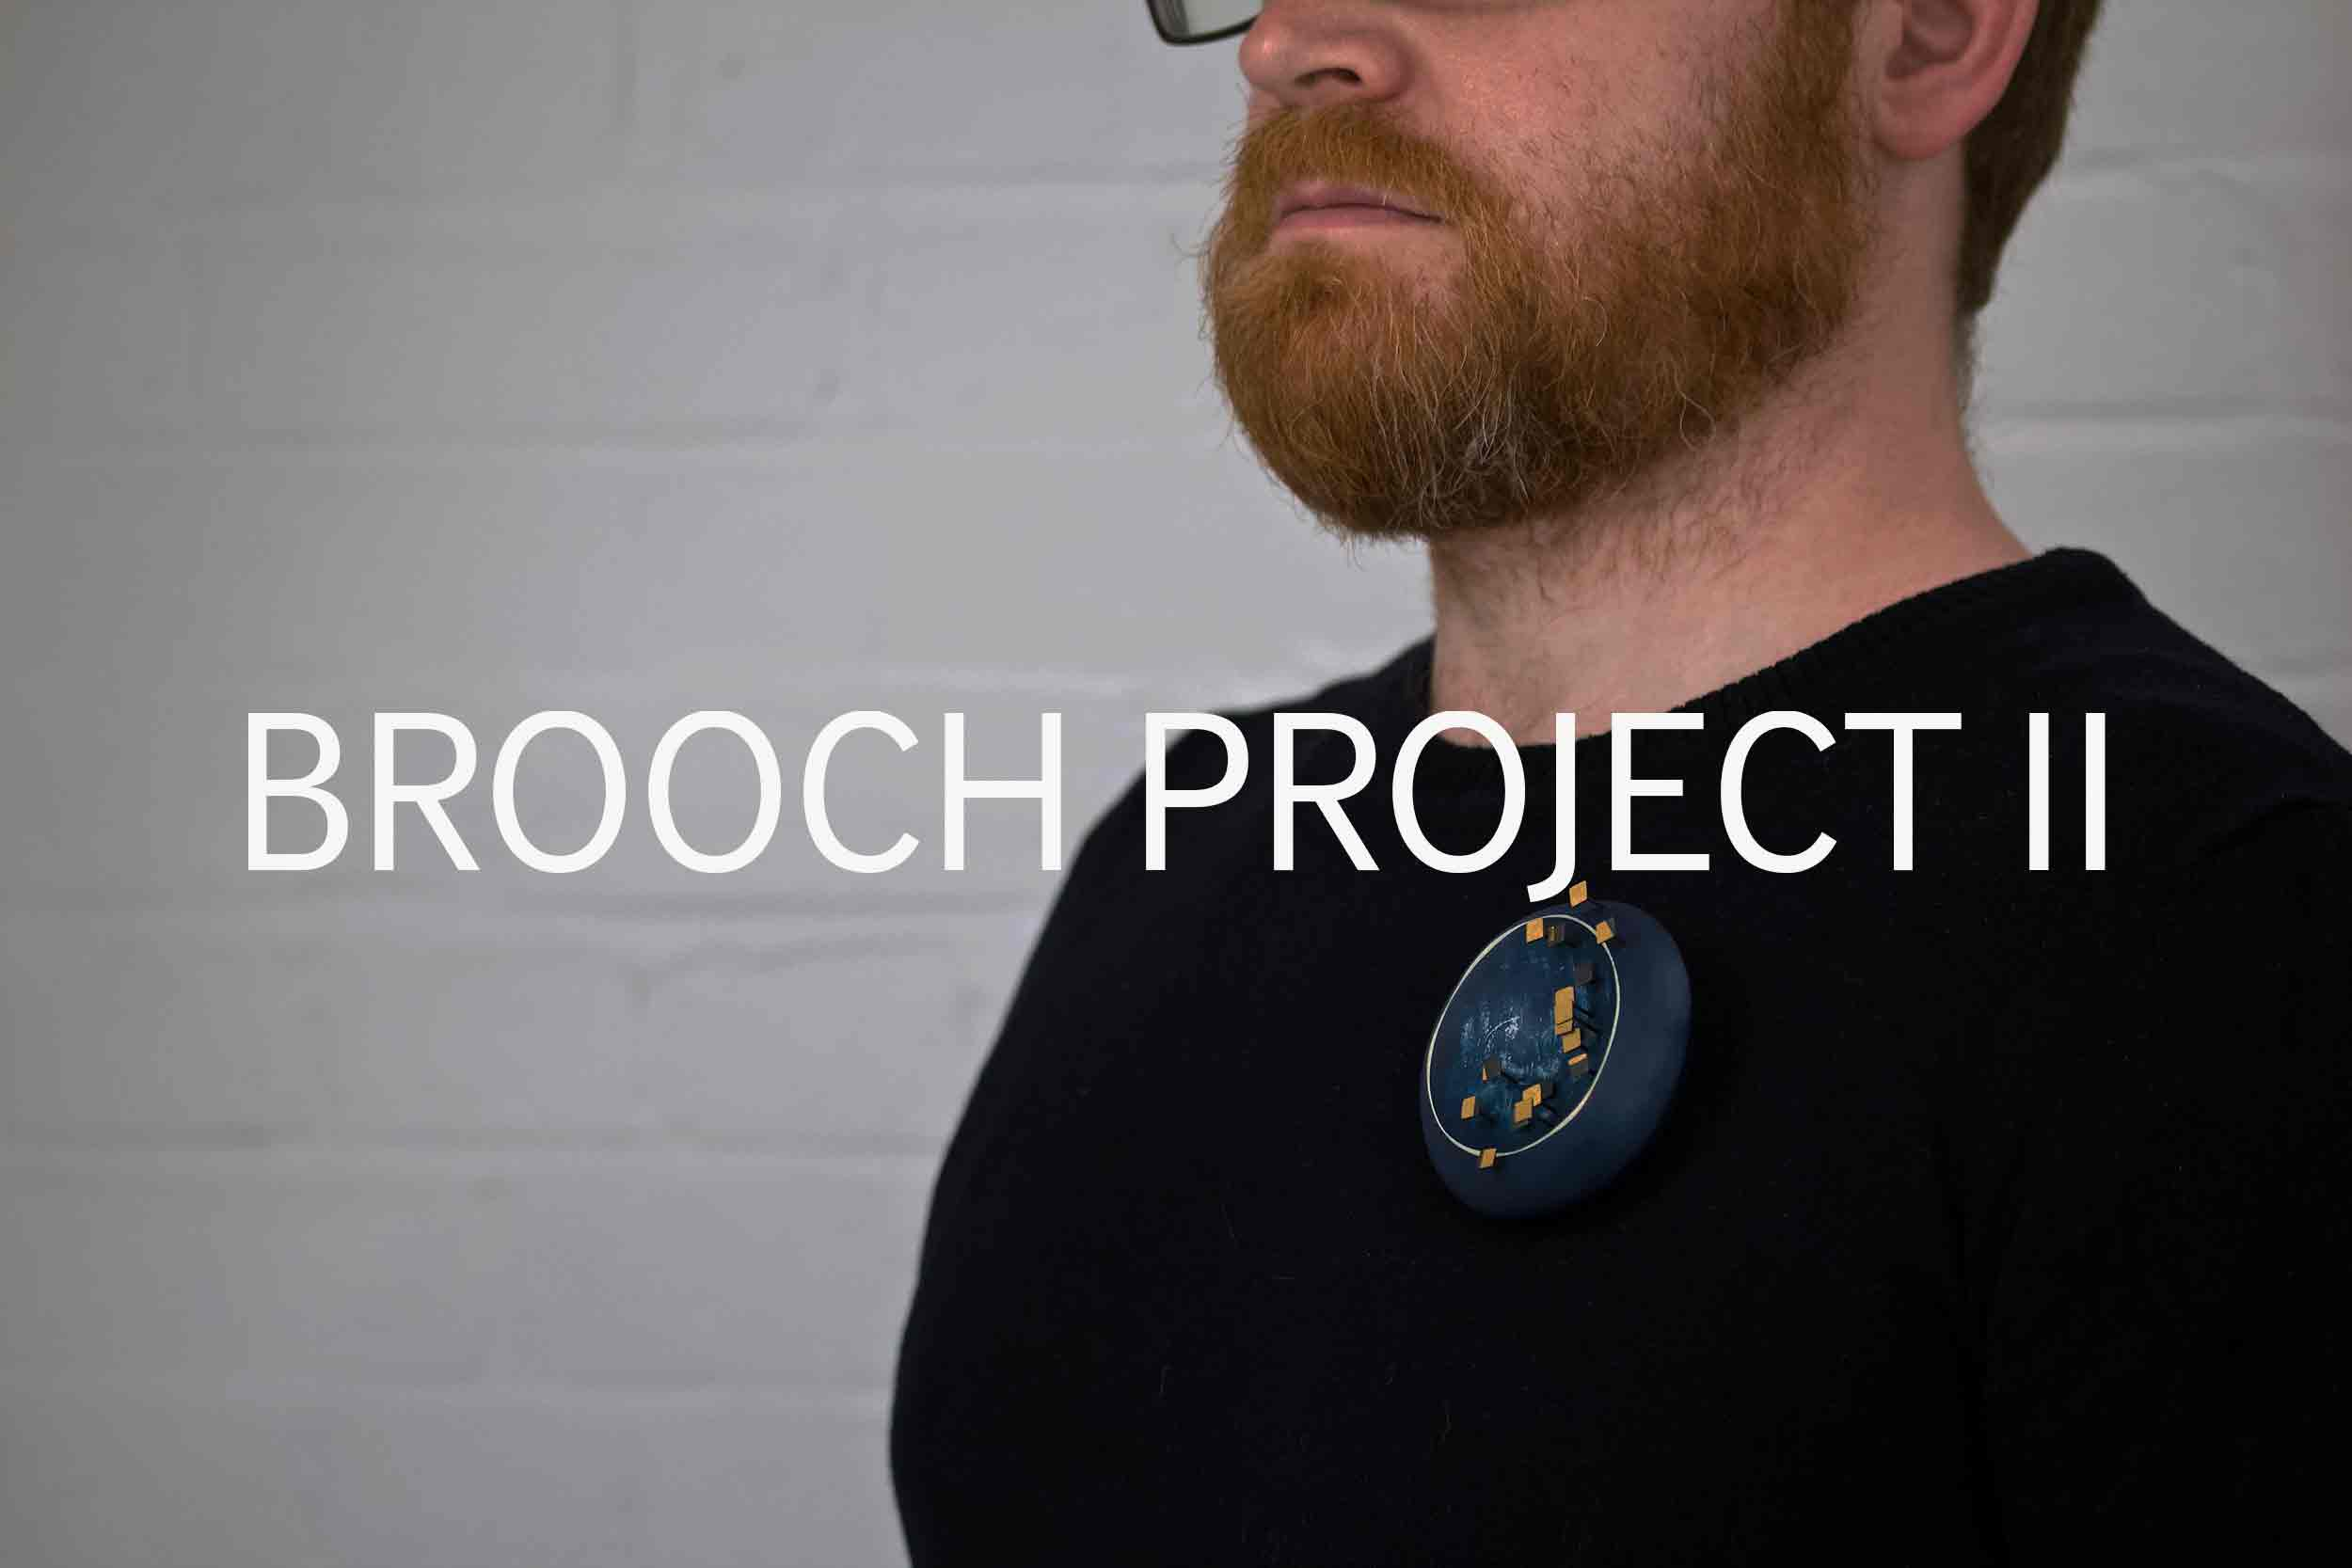 brooch-project-II.jpg